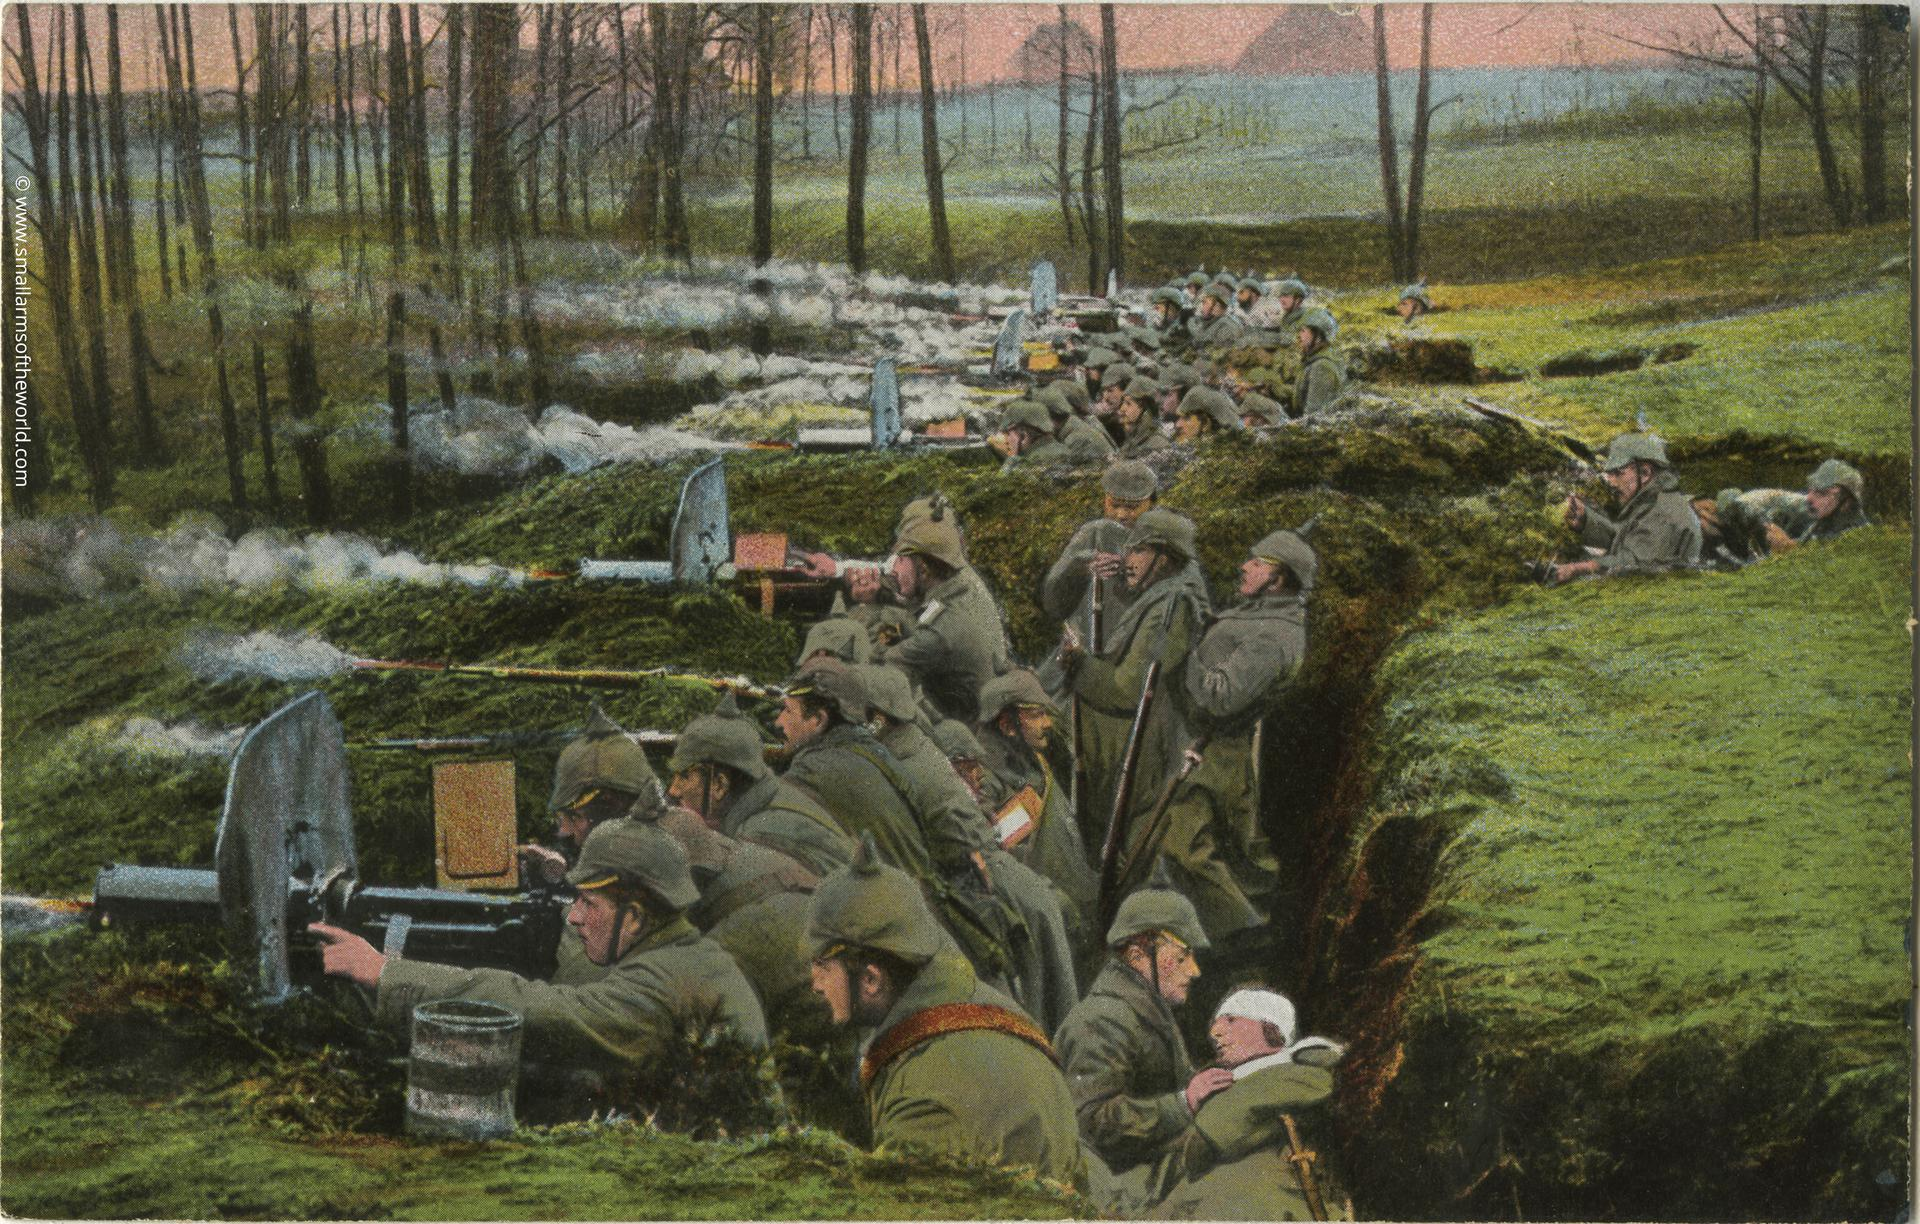 These two photos are probably the best known photos of German machine gun troops of early WWI. Taken at Misurian lakes in East Prussia. They show a six gun machine gun company dug in a trench. The coloured photo which shows the gun firing to the left was taken at more or less the same time as the other photo showing the guns firing to the right. The men in the 1st photo can be seen at the very top of the 2nd photo. Note the smoke and flame effect have been added during the colourisation process of the photo.